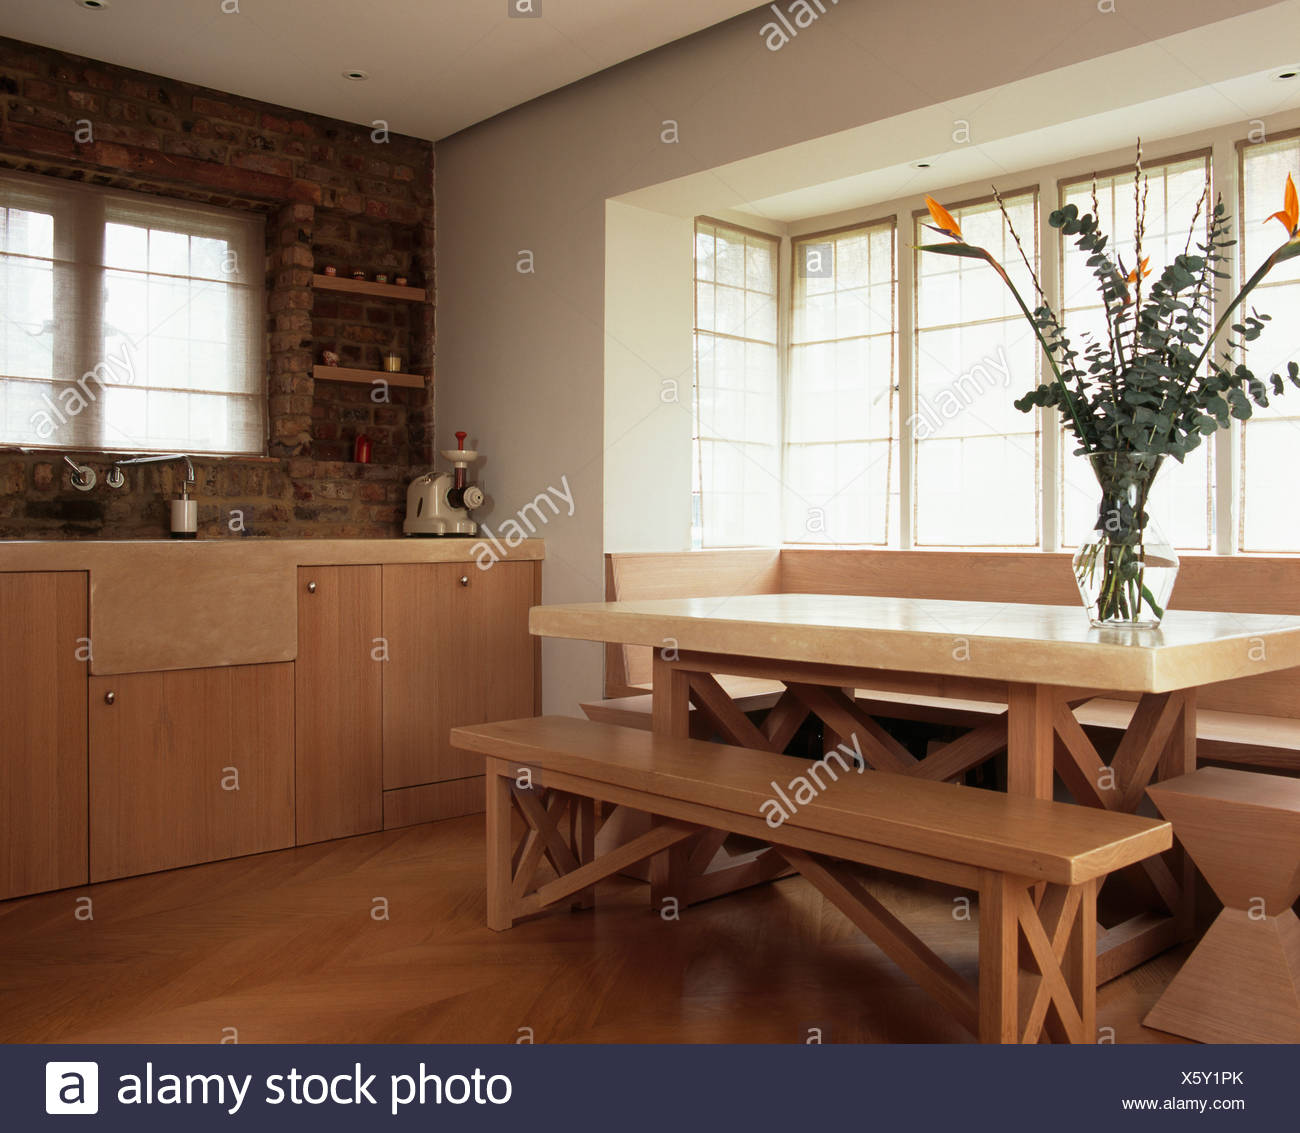 Melamine Topped Table And Simple Wood Benches In Front Of Window In Modern Country Kitchen Stock Photo Alamy